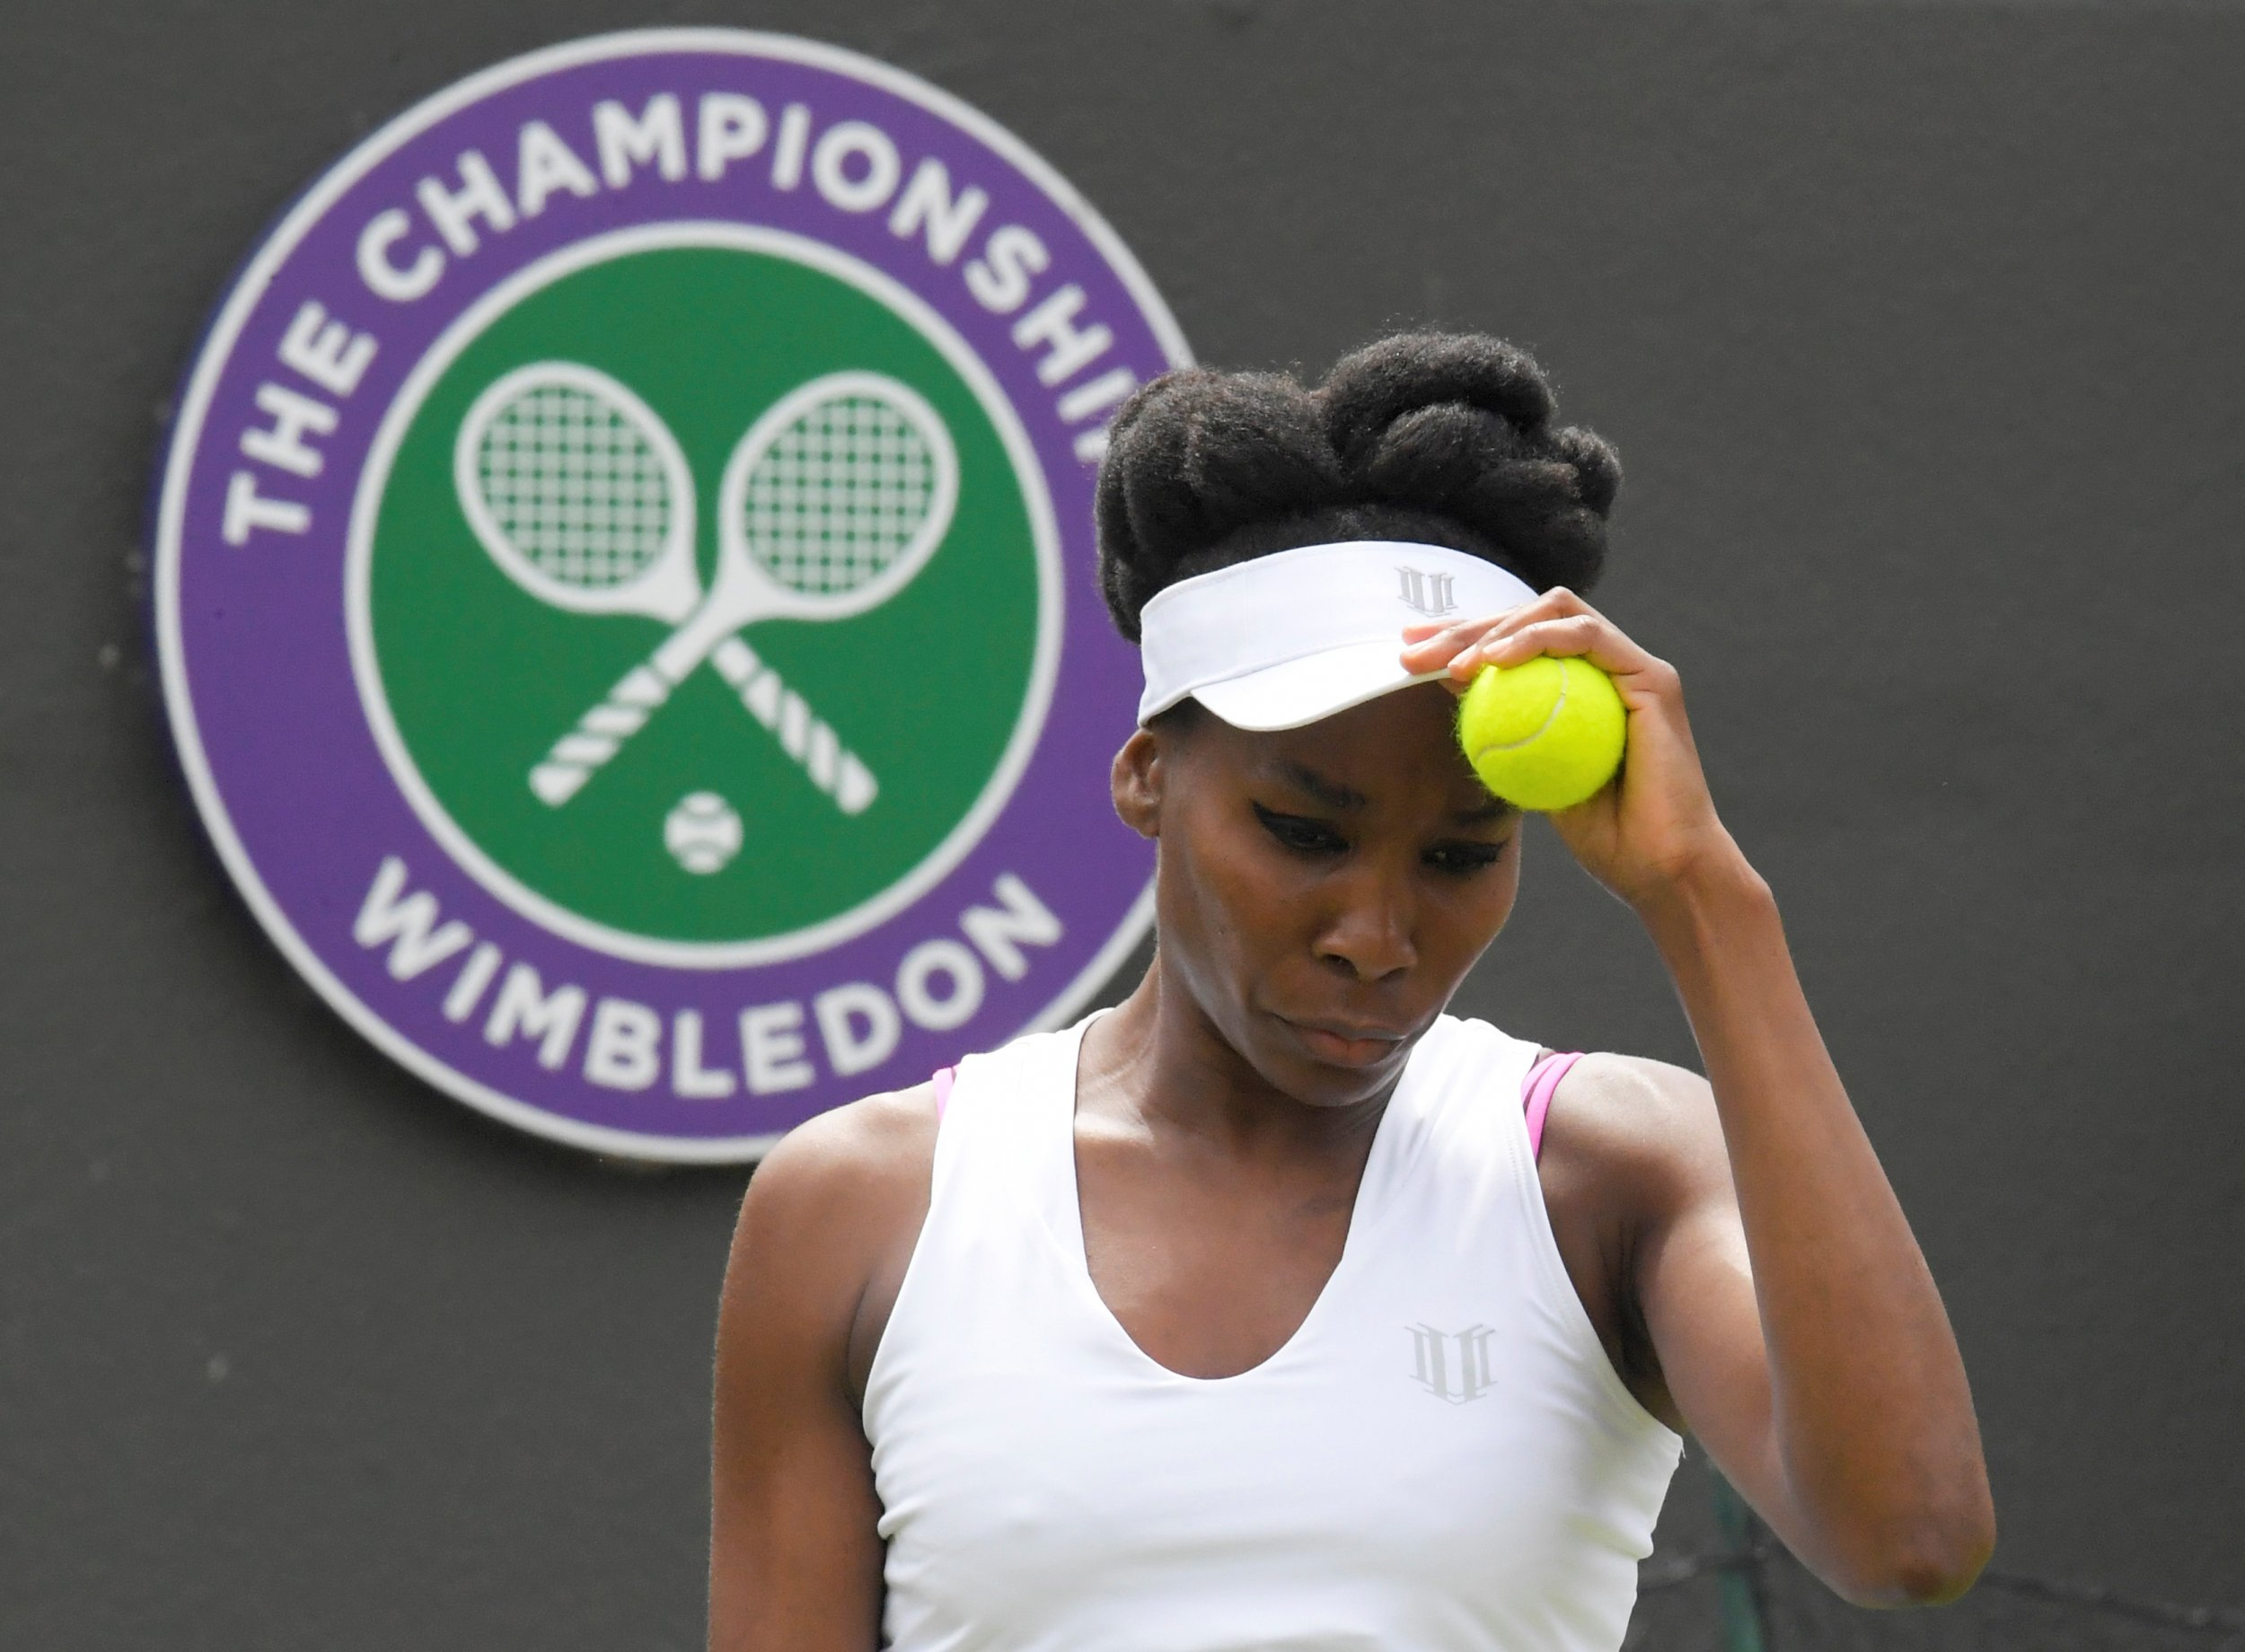 Venus Williams at Wimbledon 2017